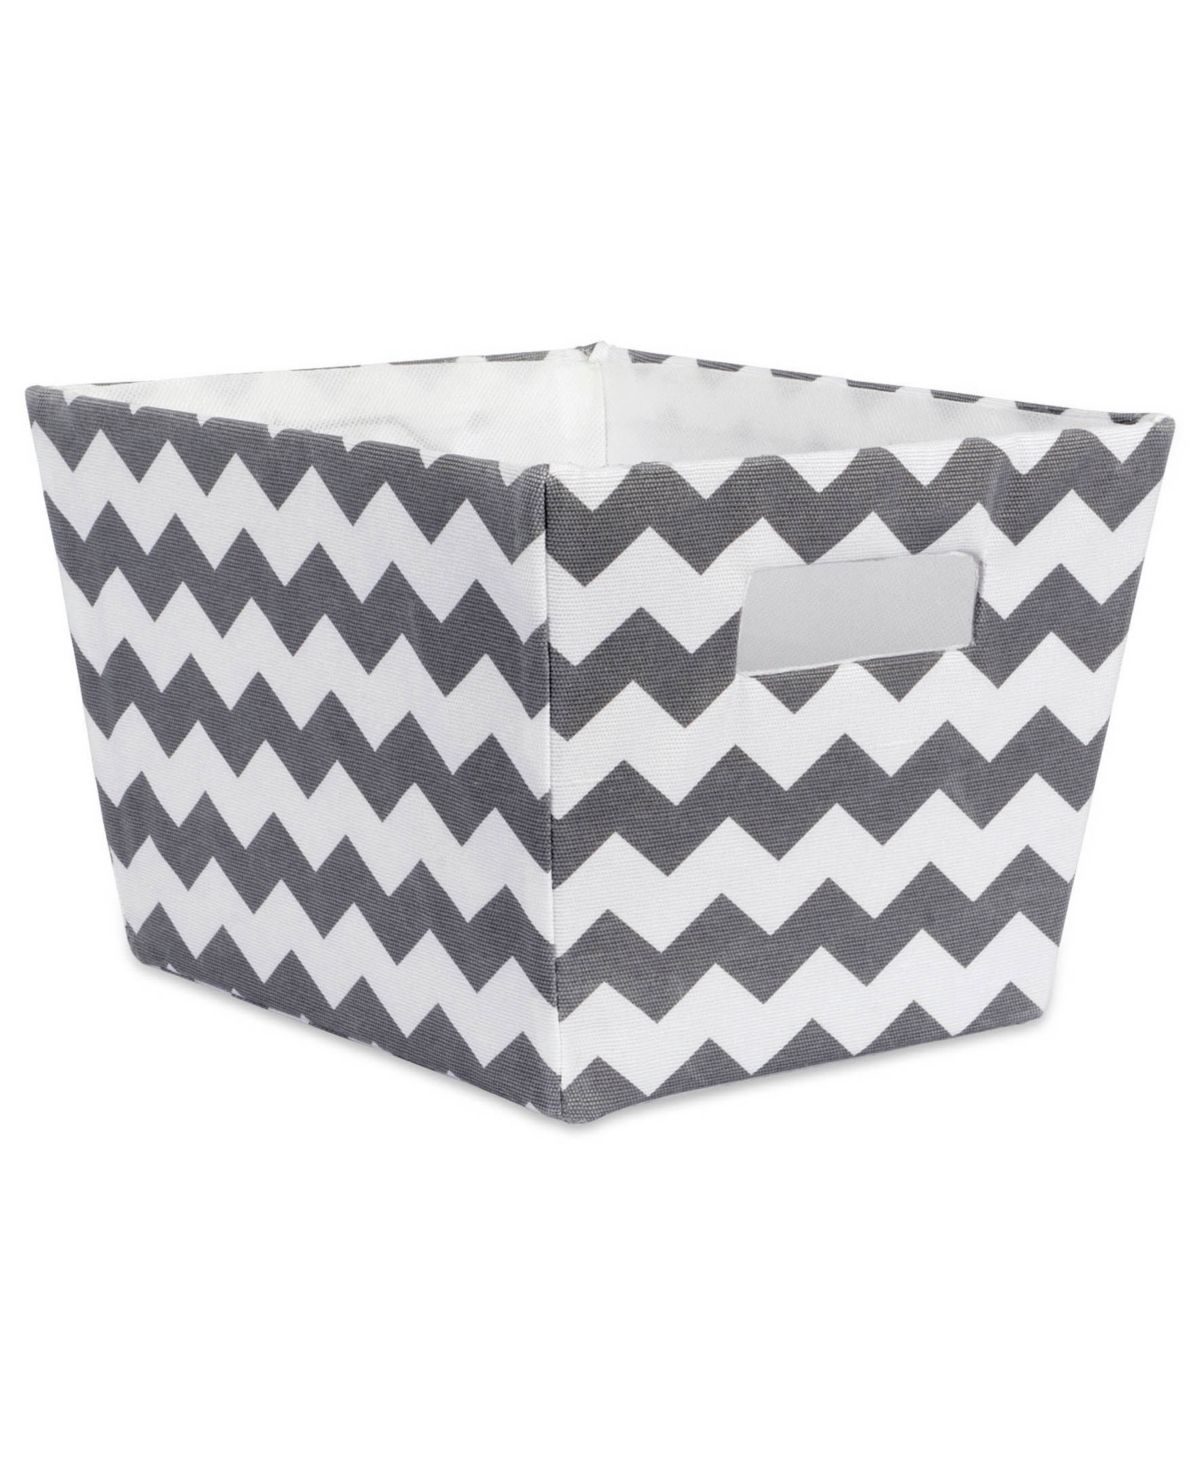 Polyester storage bins are a fun and creative way to organize. Wrapped in polyester fabric these storage bins have a cardboard core on sides and bottom to give shape and add structure while still allowing bins to fold flat when not in use.